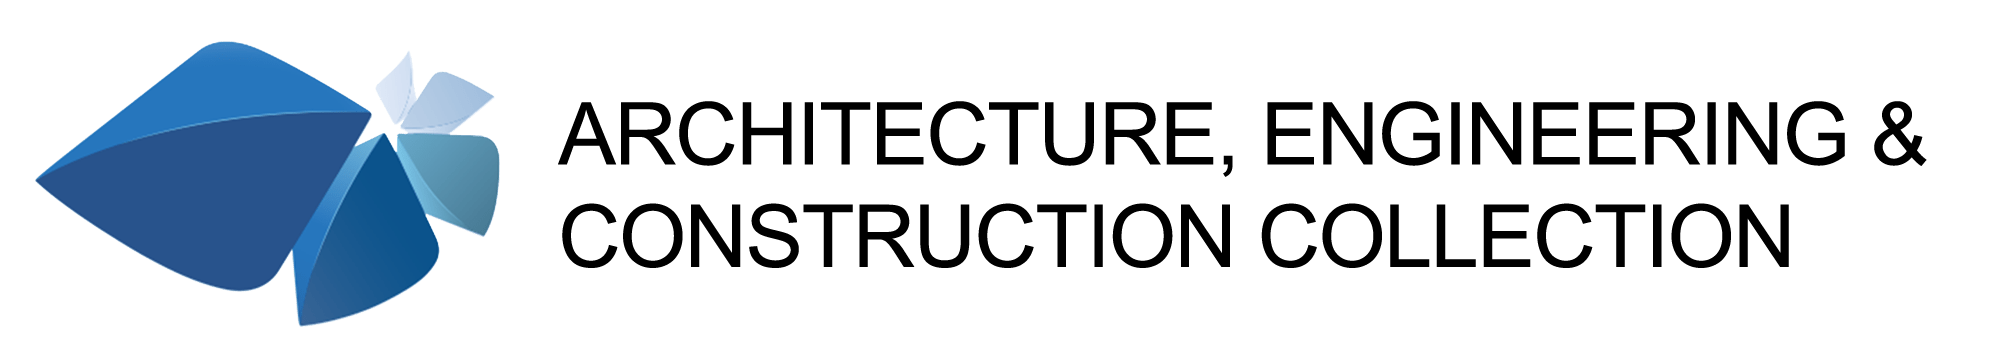 architecture-engineering-construction-collection